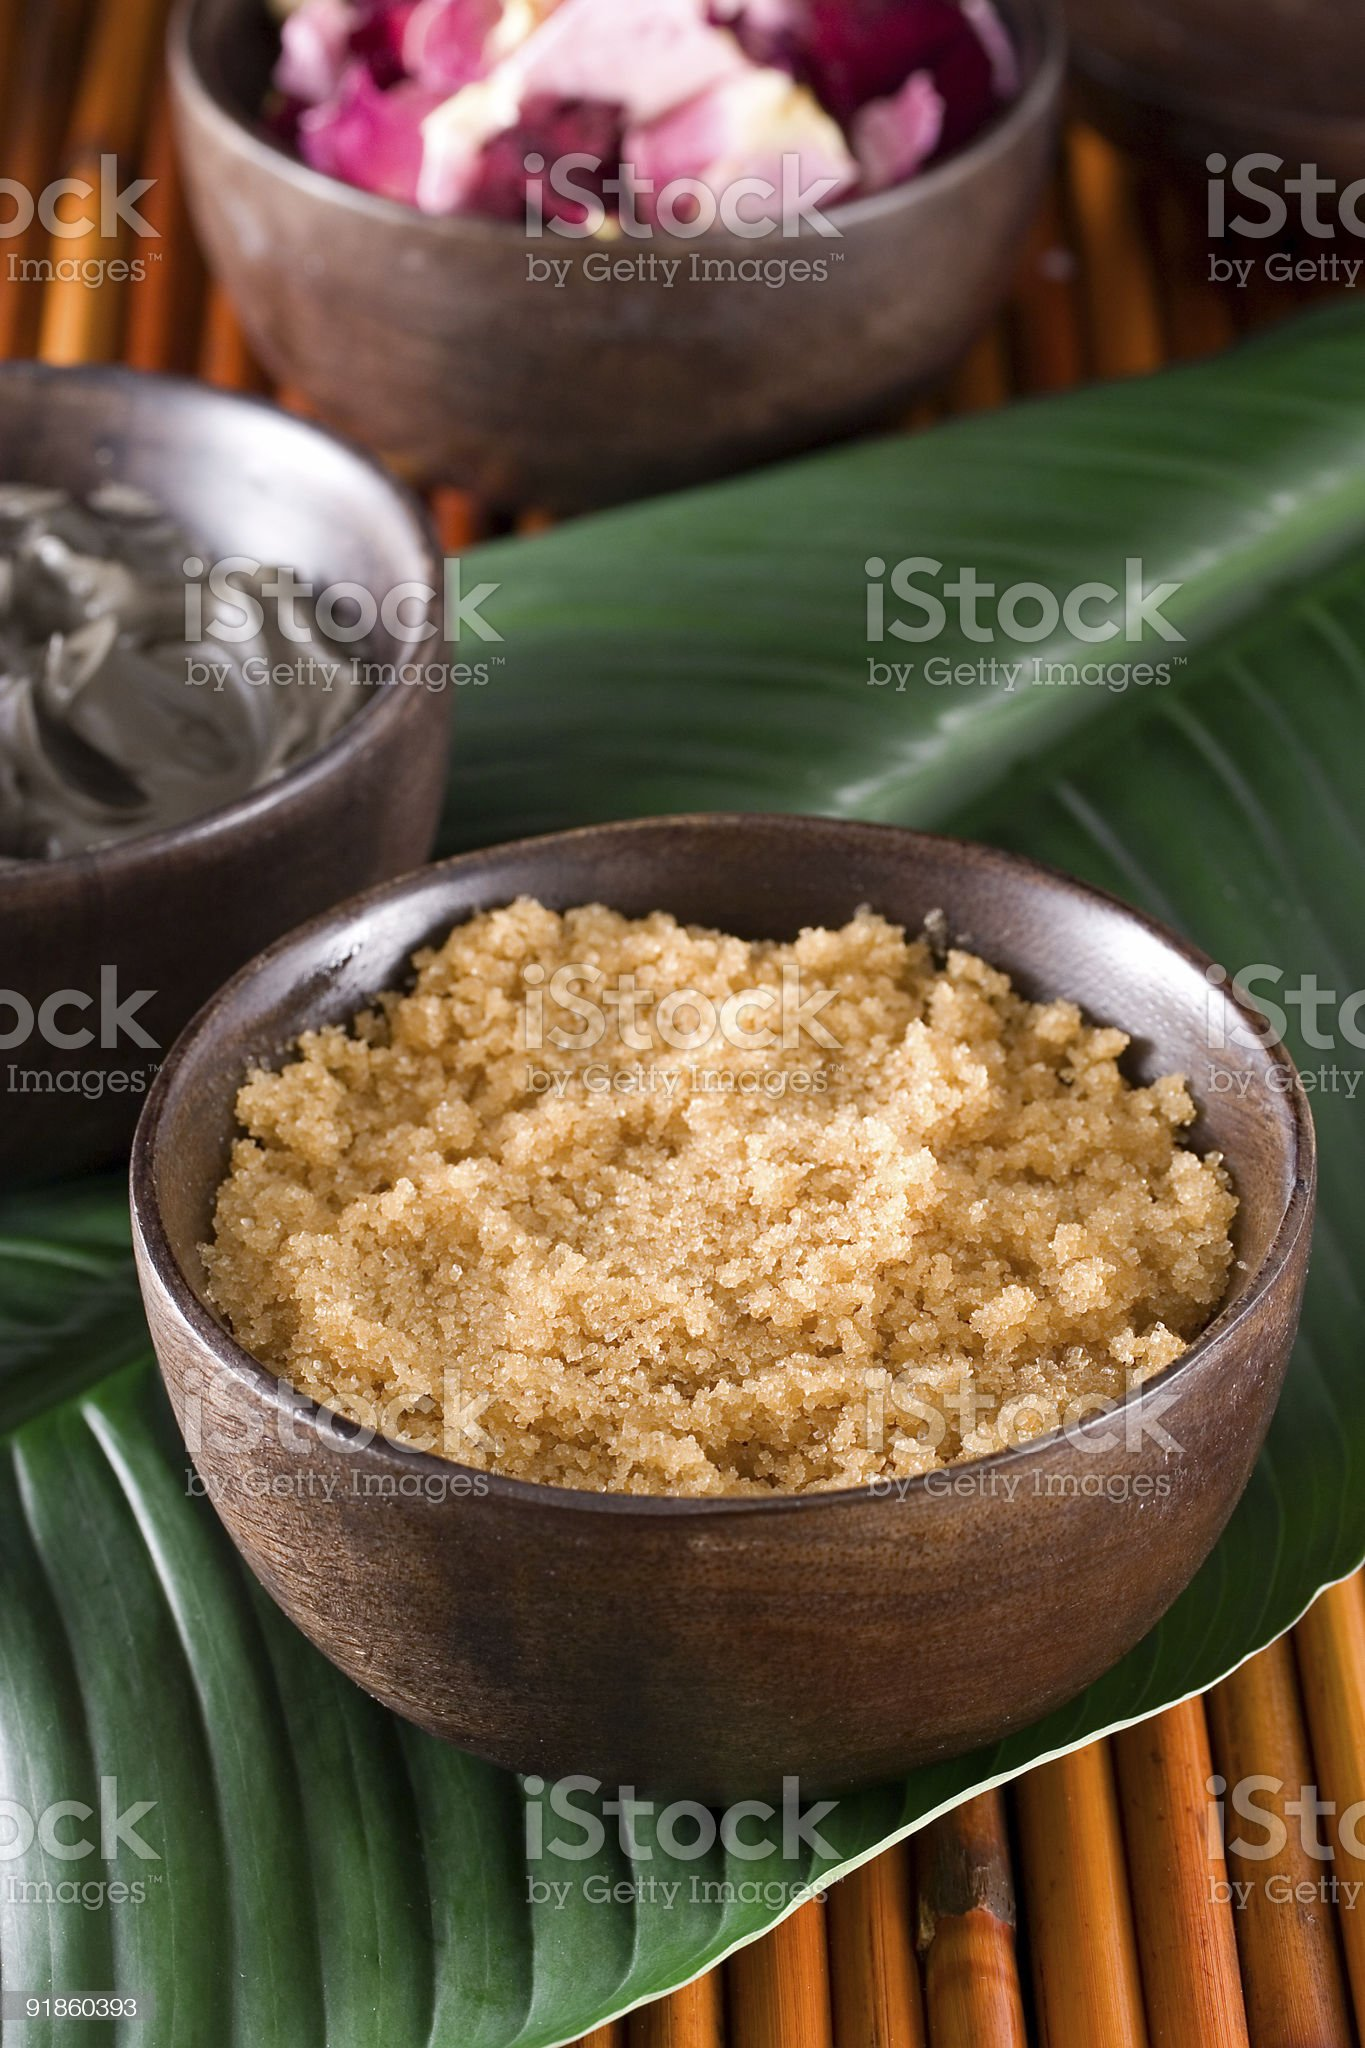 Bowls filled with random ingredients royalty-free stock photo